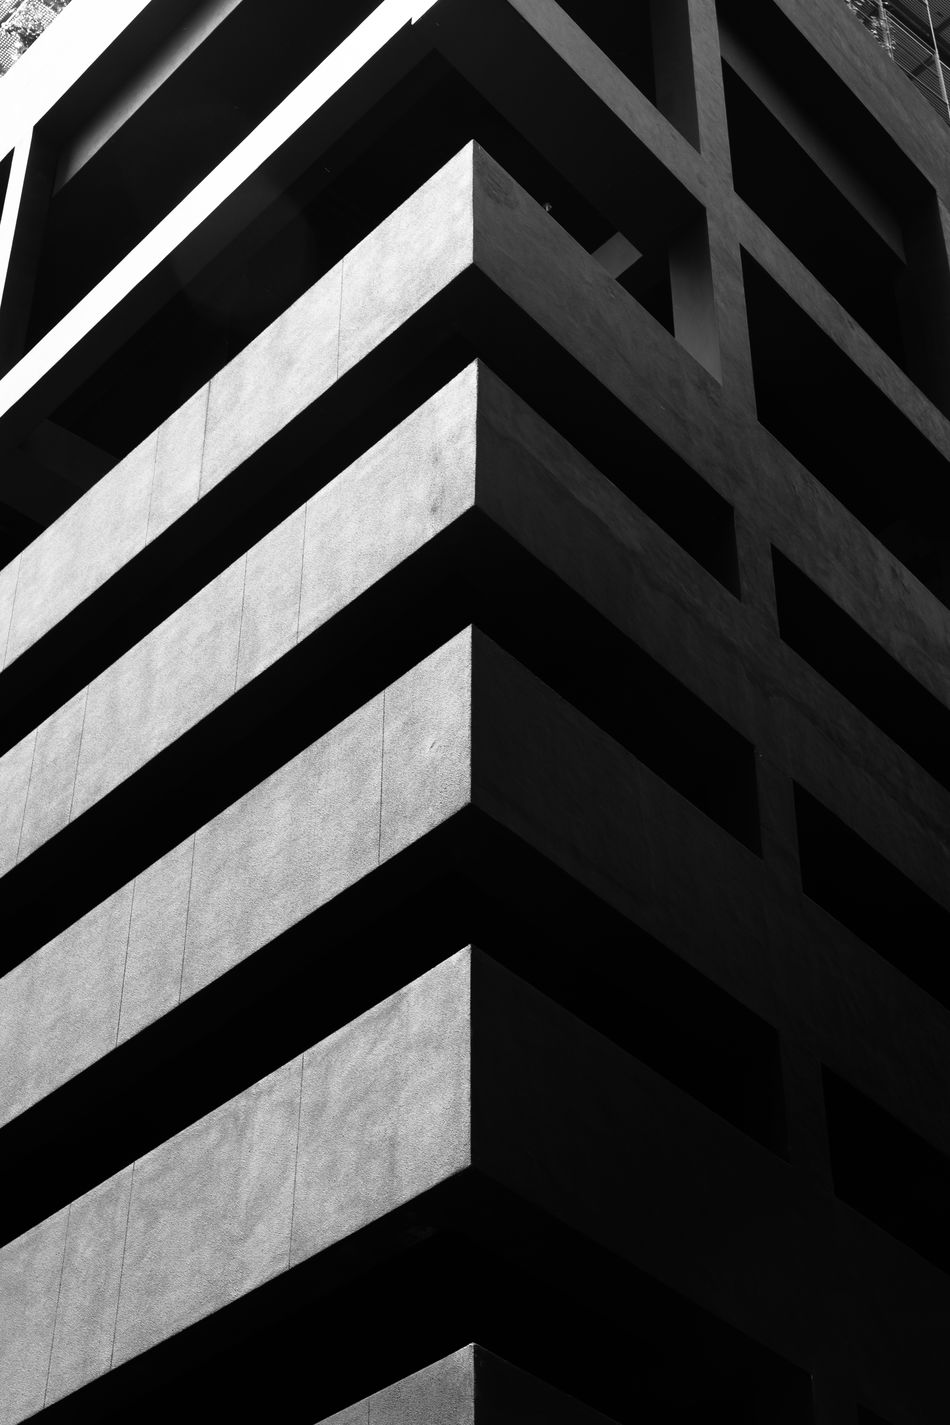 Architecture Backgrounds Black Blackandwhite Building Exterior Built Structure Close-up Day Design Facade Building Form Full Frame Geometric Shape Lines And Shapes Minimalism No People Outdoor Photography Outdoors Pattern Strong Urban